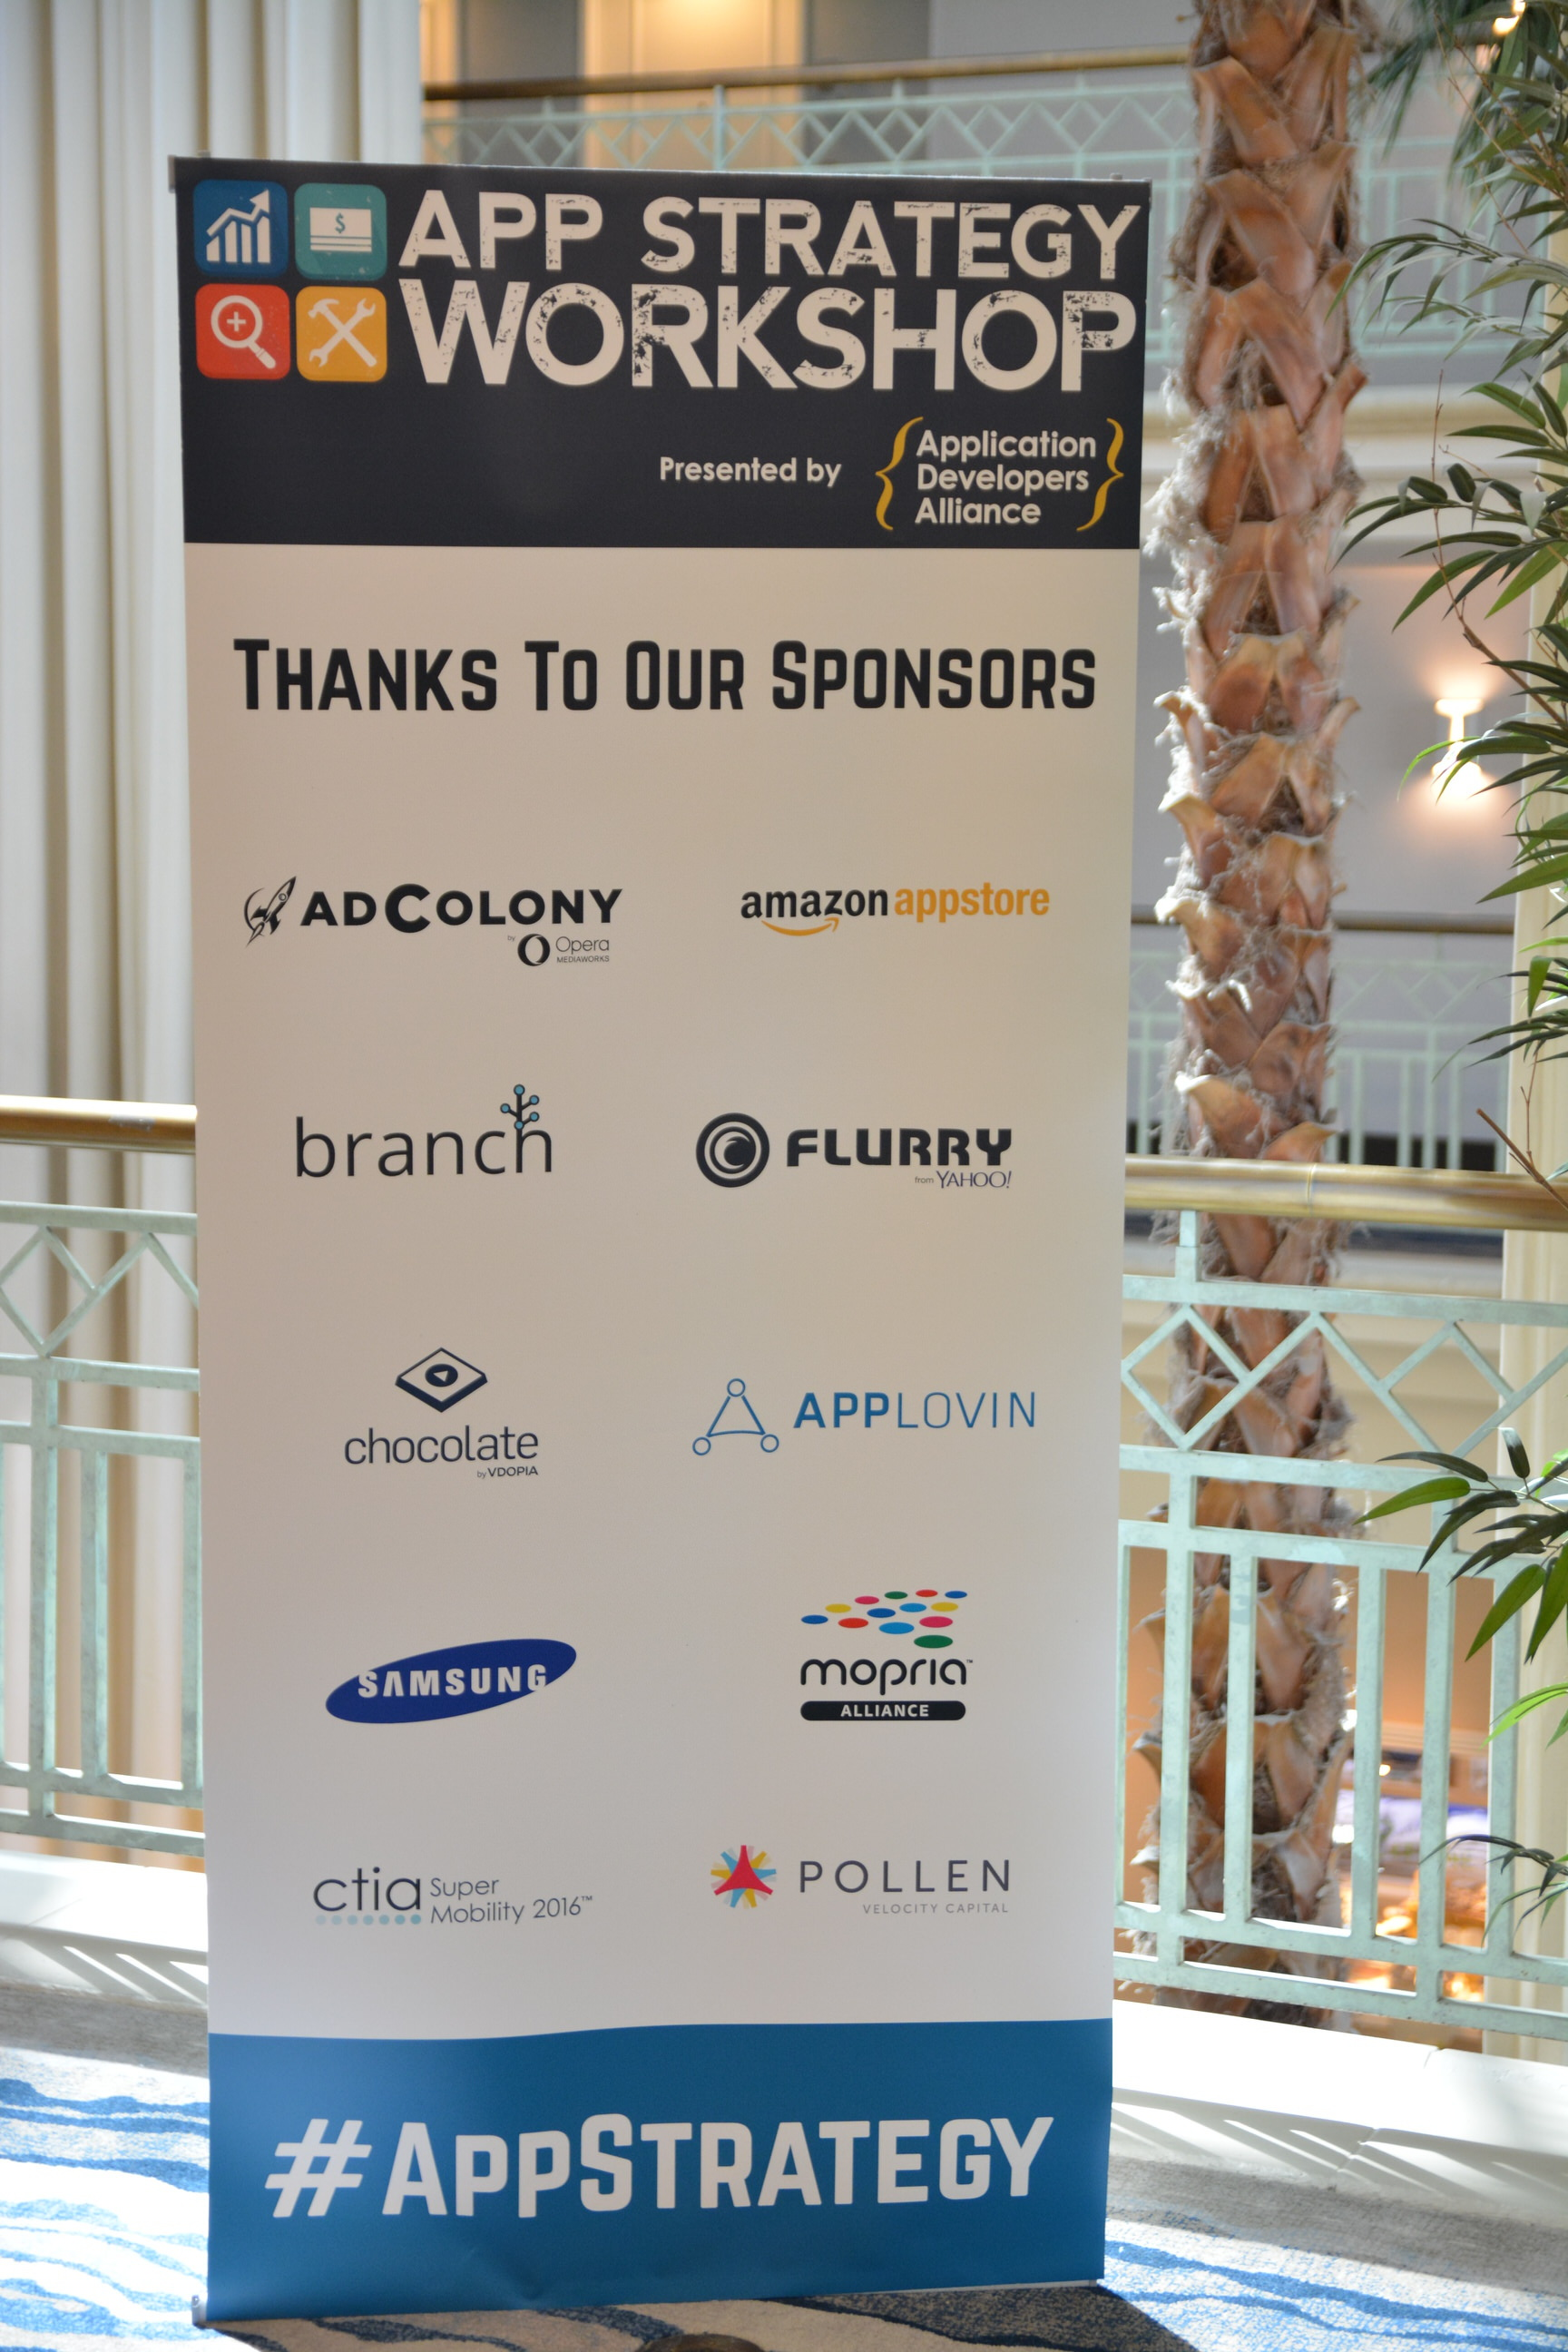 Thanks to all of our fantastic sponsors!